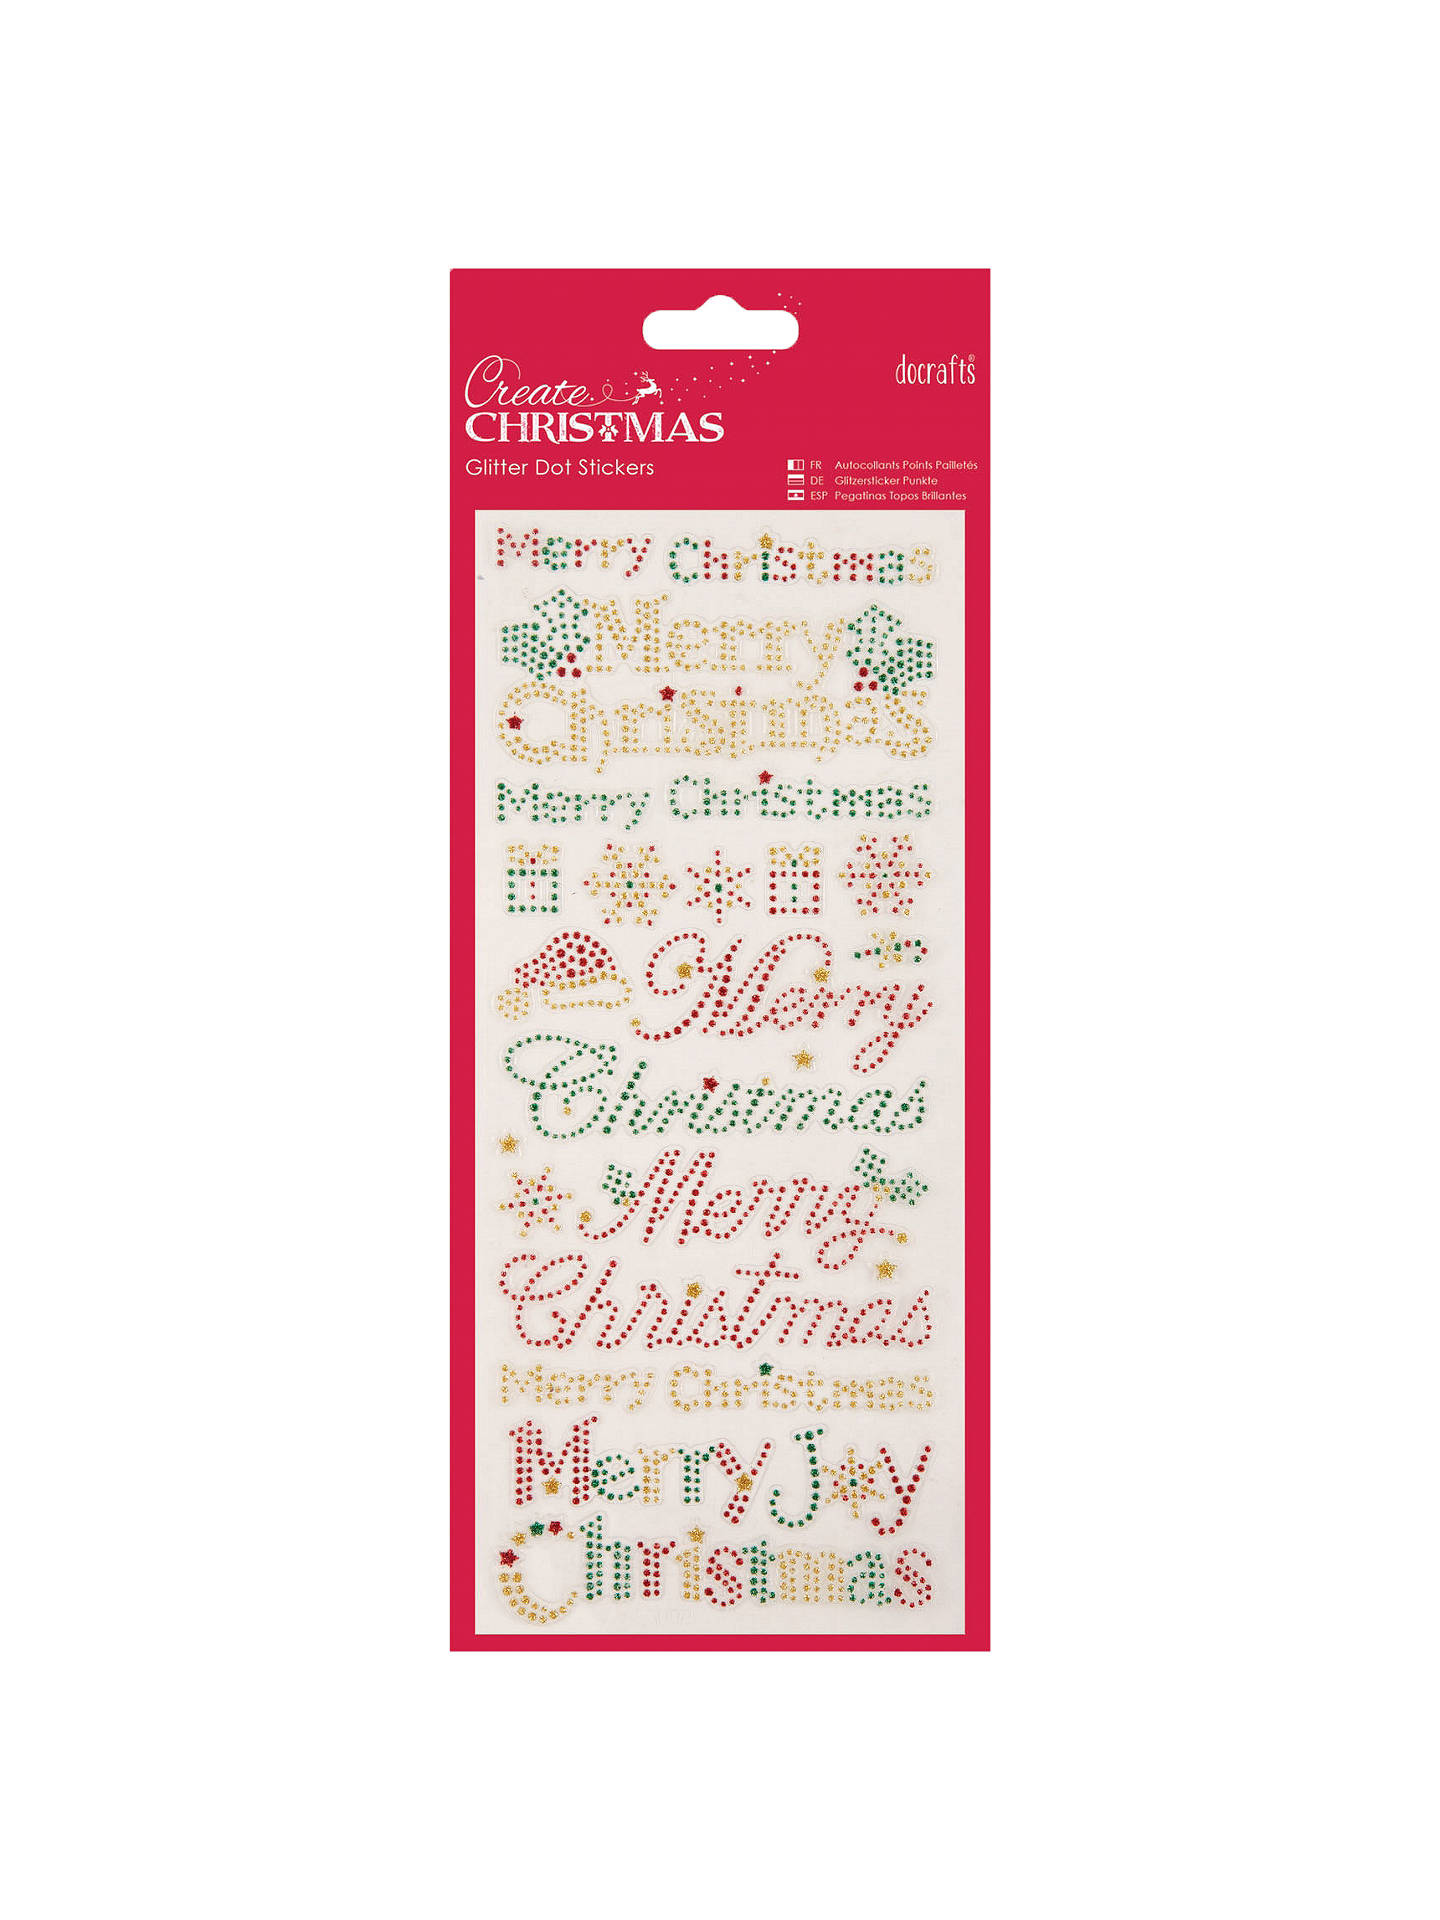 Docrafts Merry Christmas Glitter Dot Stickers Red Gold Online At Johnlewis